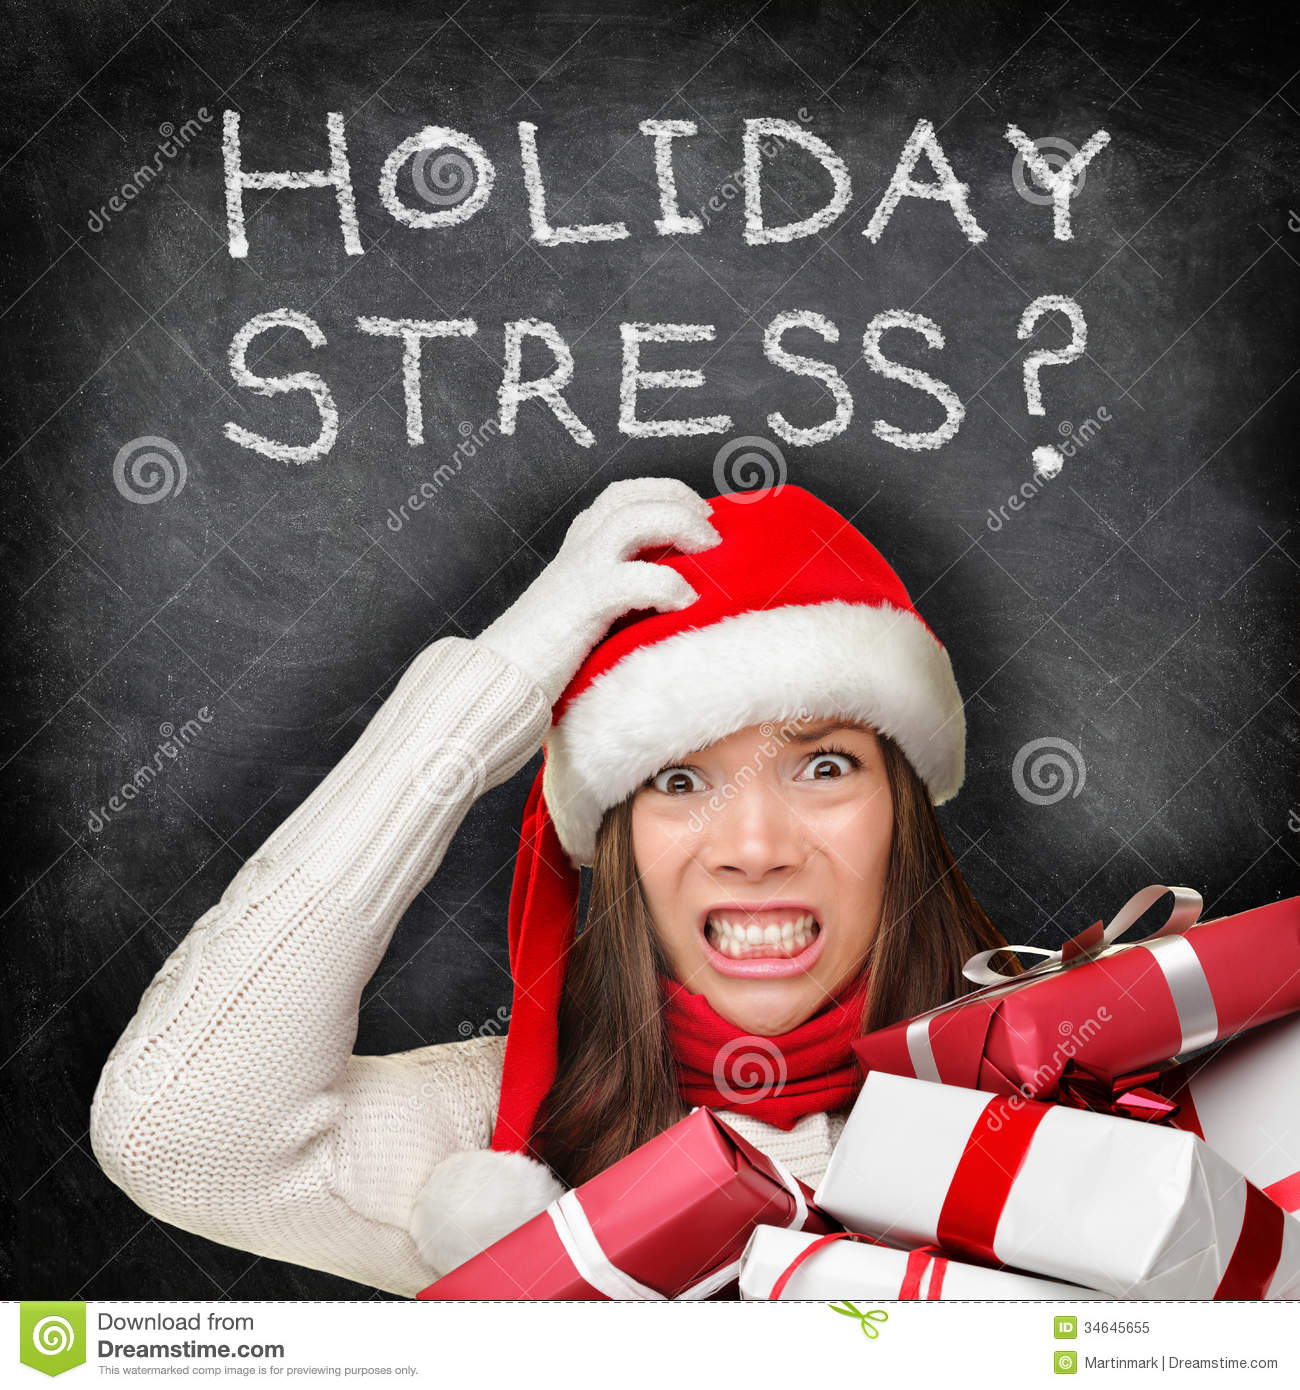 Christmas Holiday Stress   Stressed Shopping Gifts Royalty Free Stock